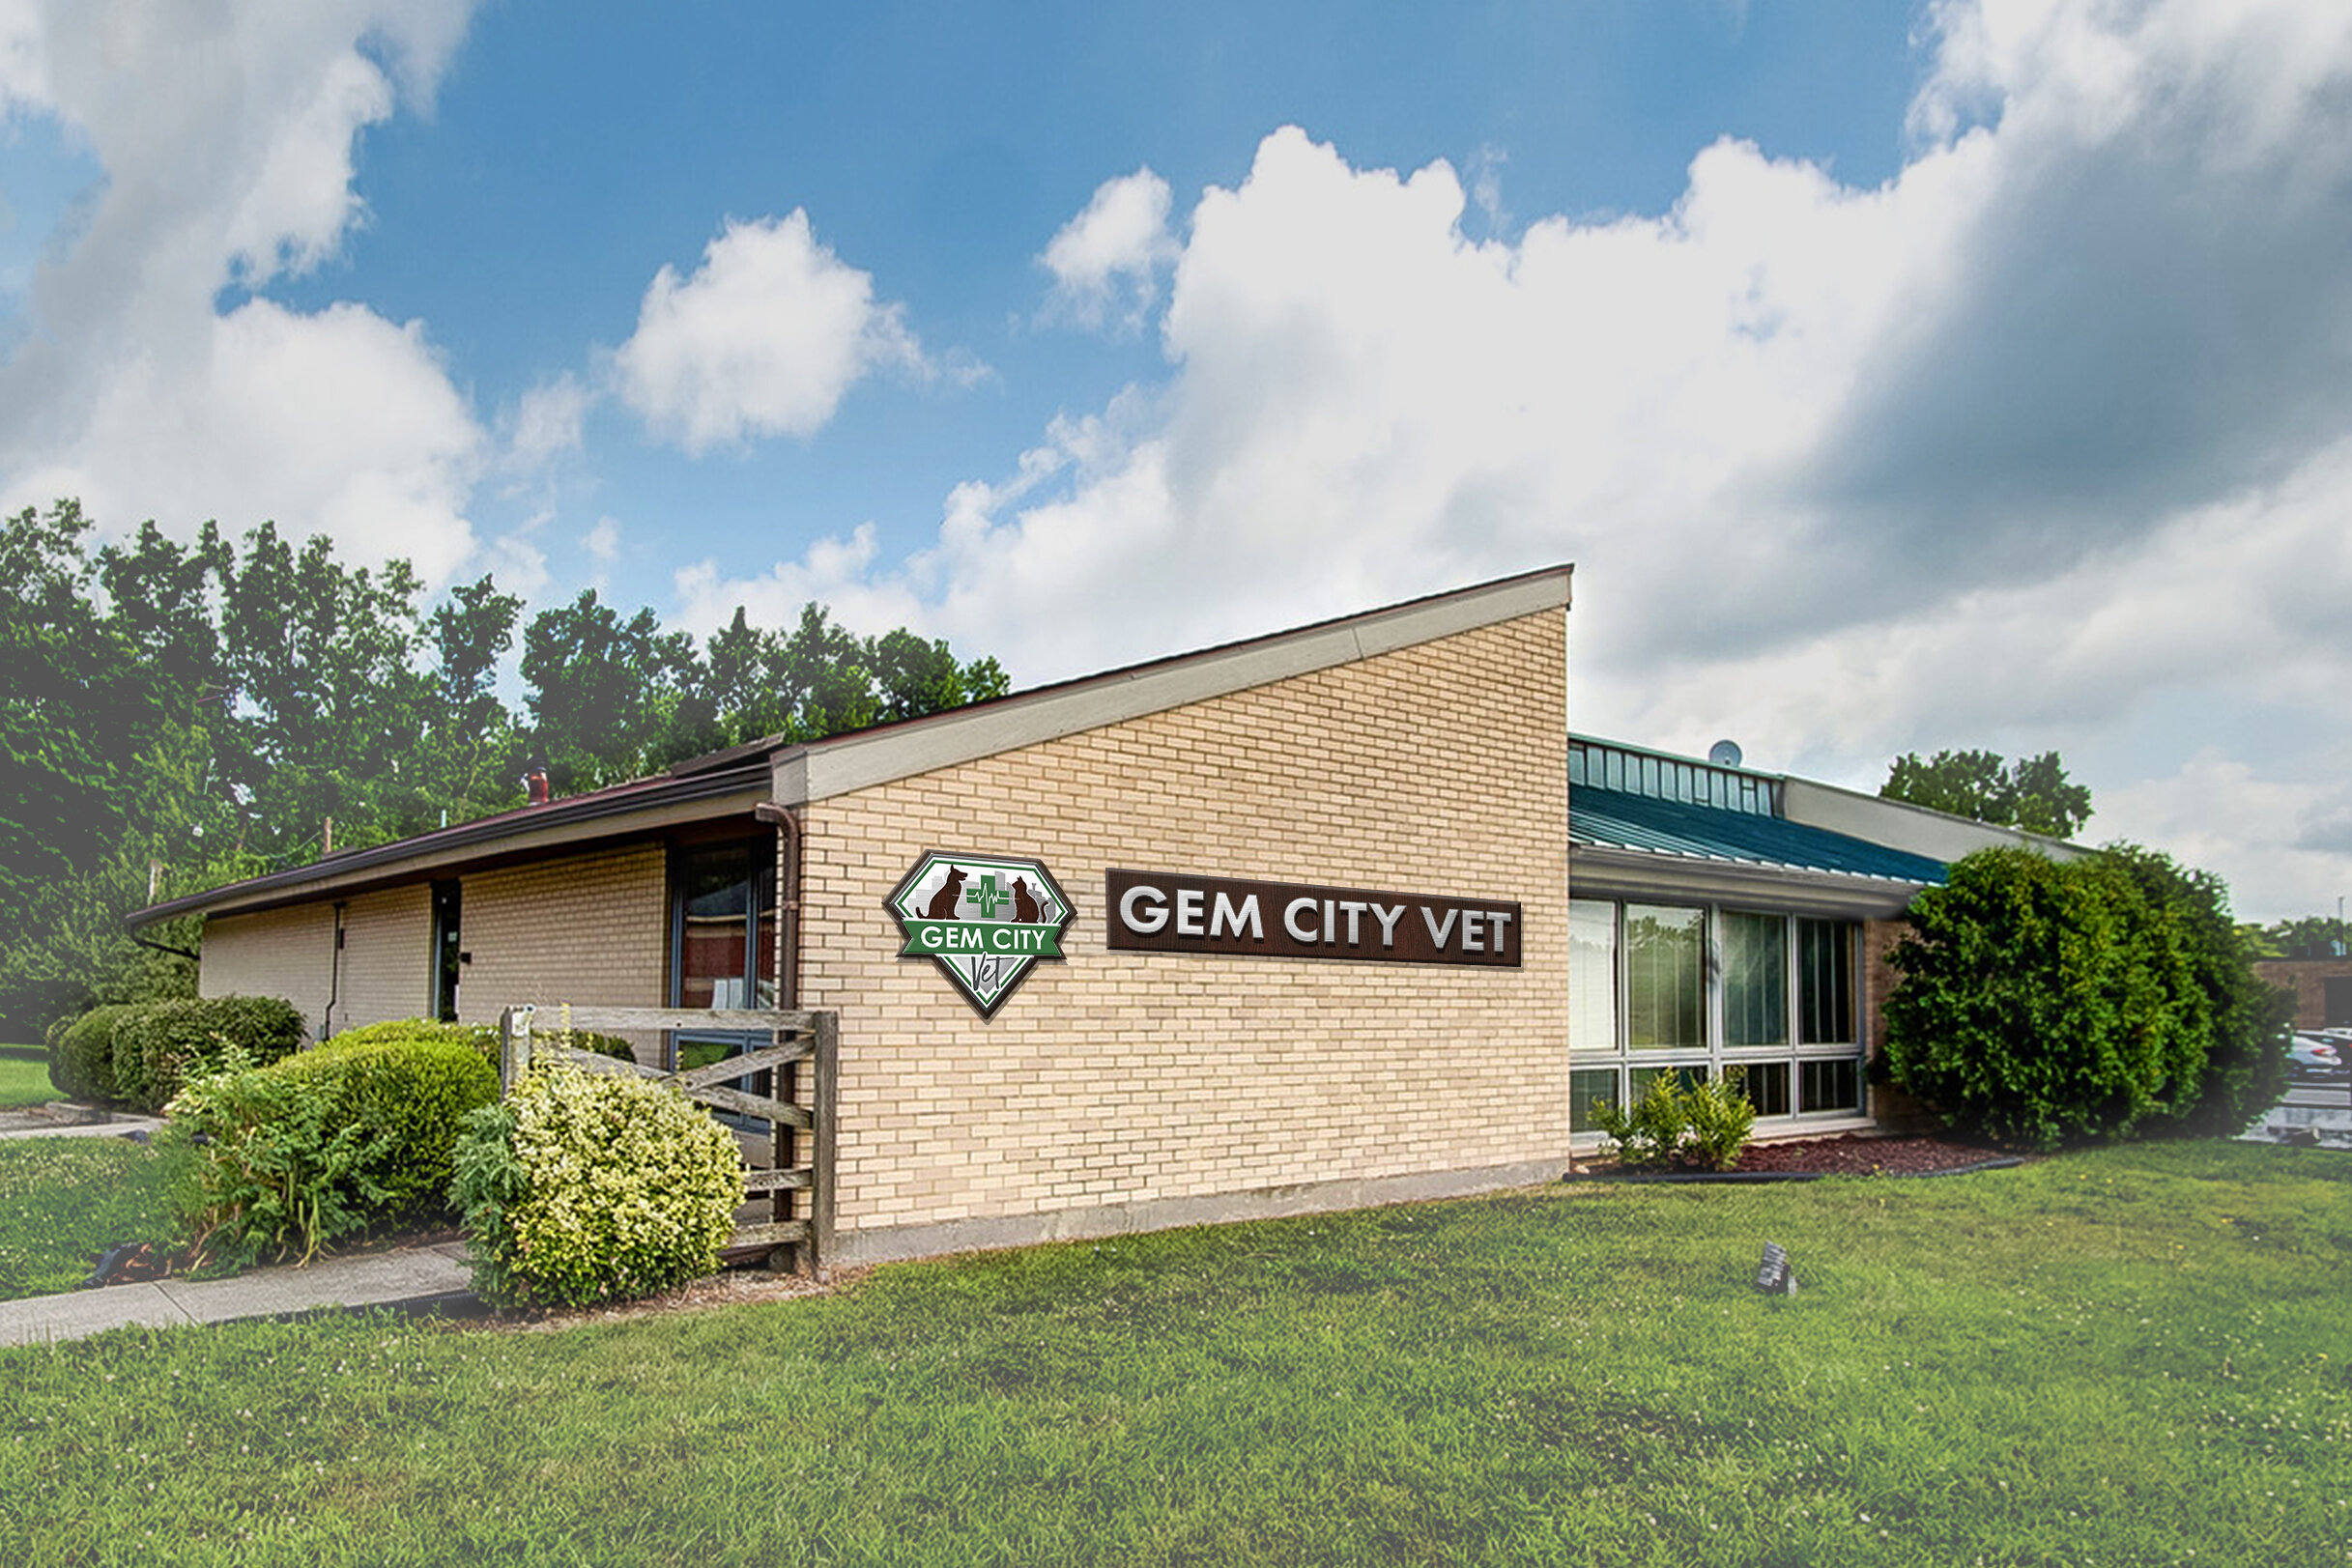 We're Opening Gem City Vet - a non-profit spay/neuter clinic